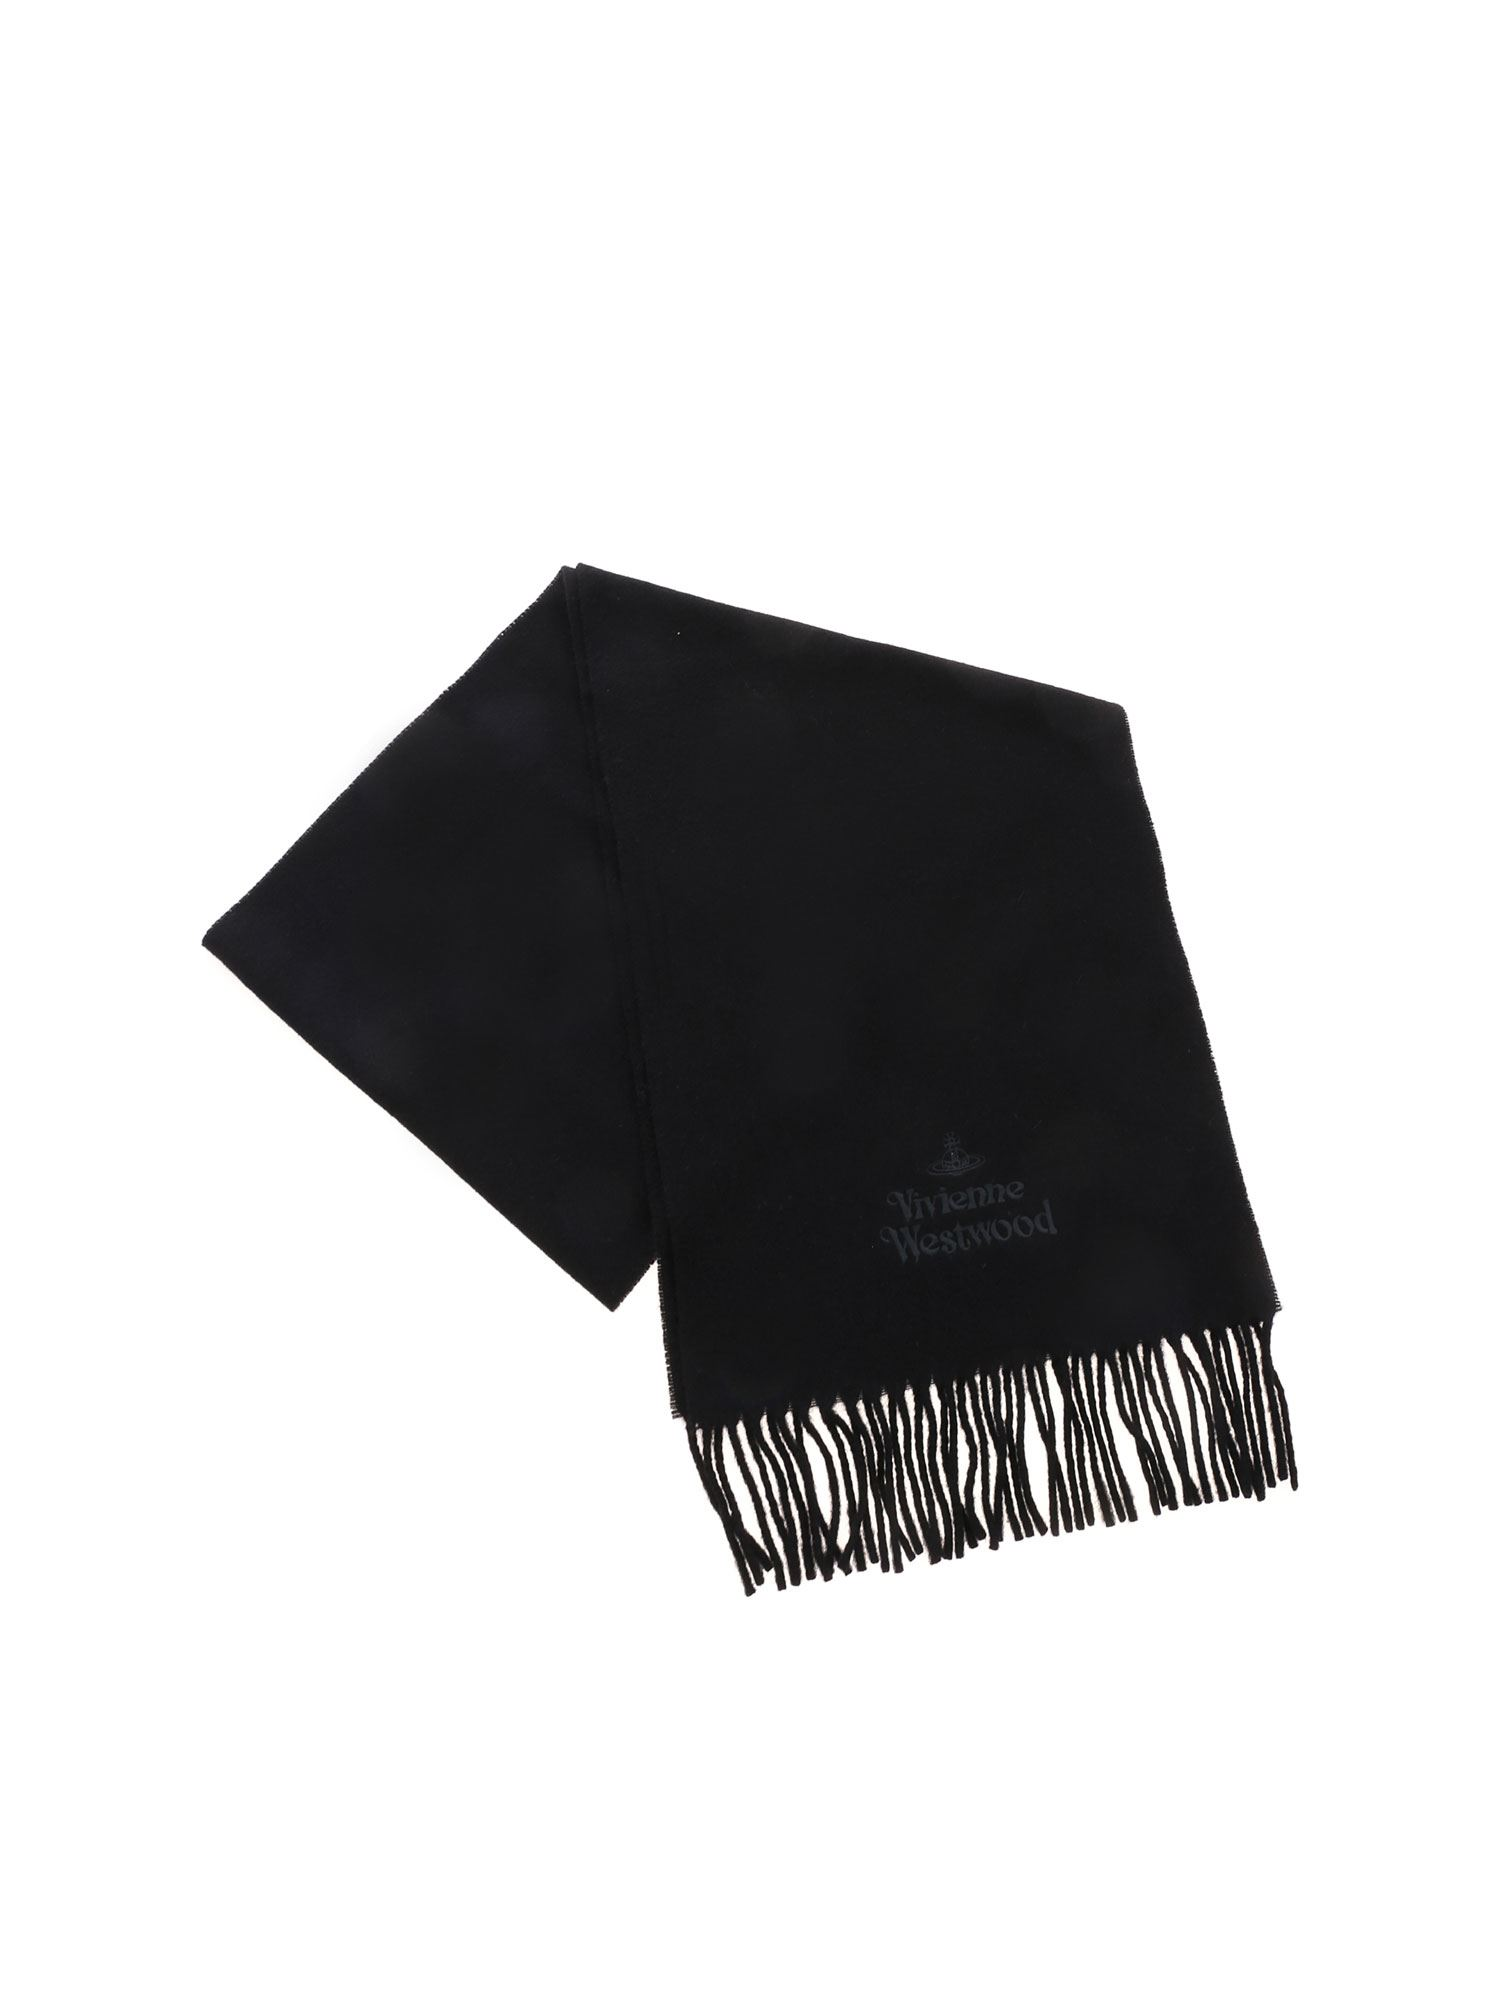 Vivienne Westwood EMBROIDERED LOGO SCARF IN BLACK